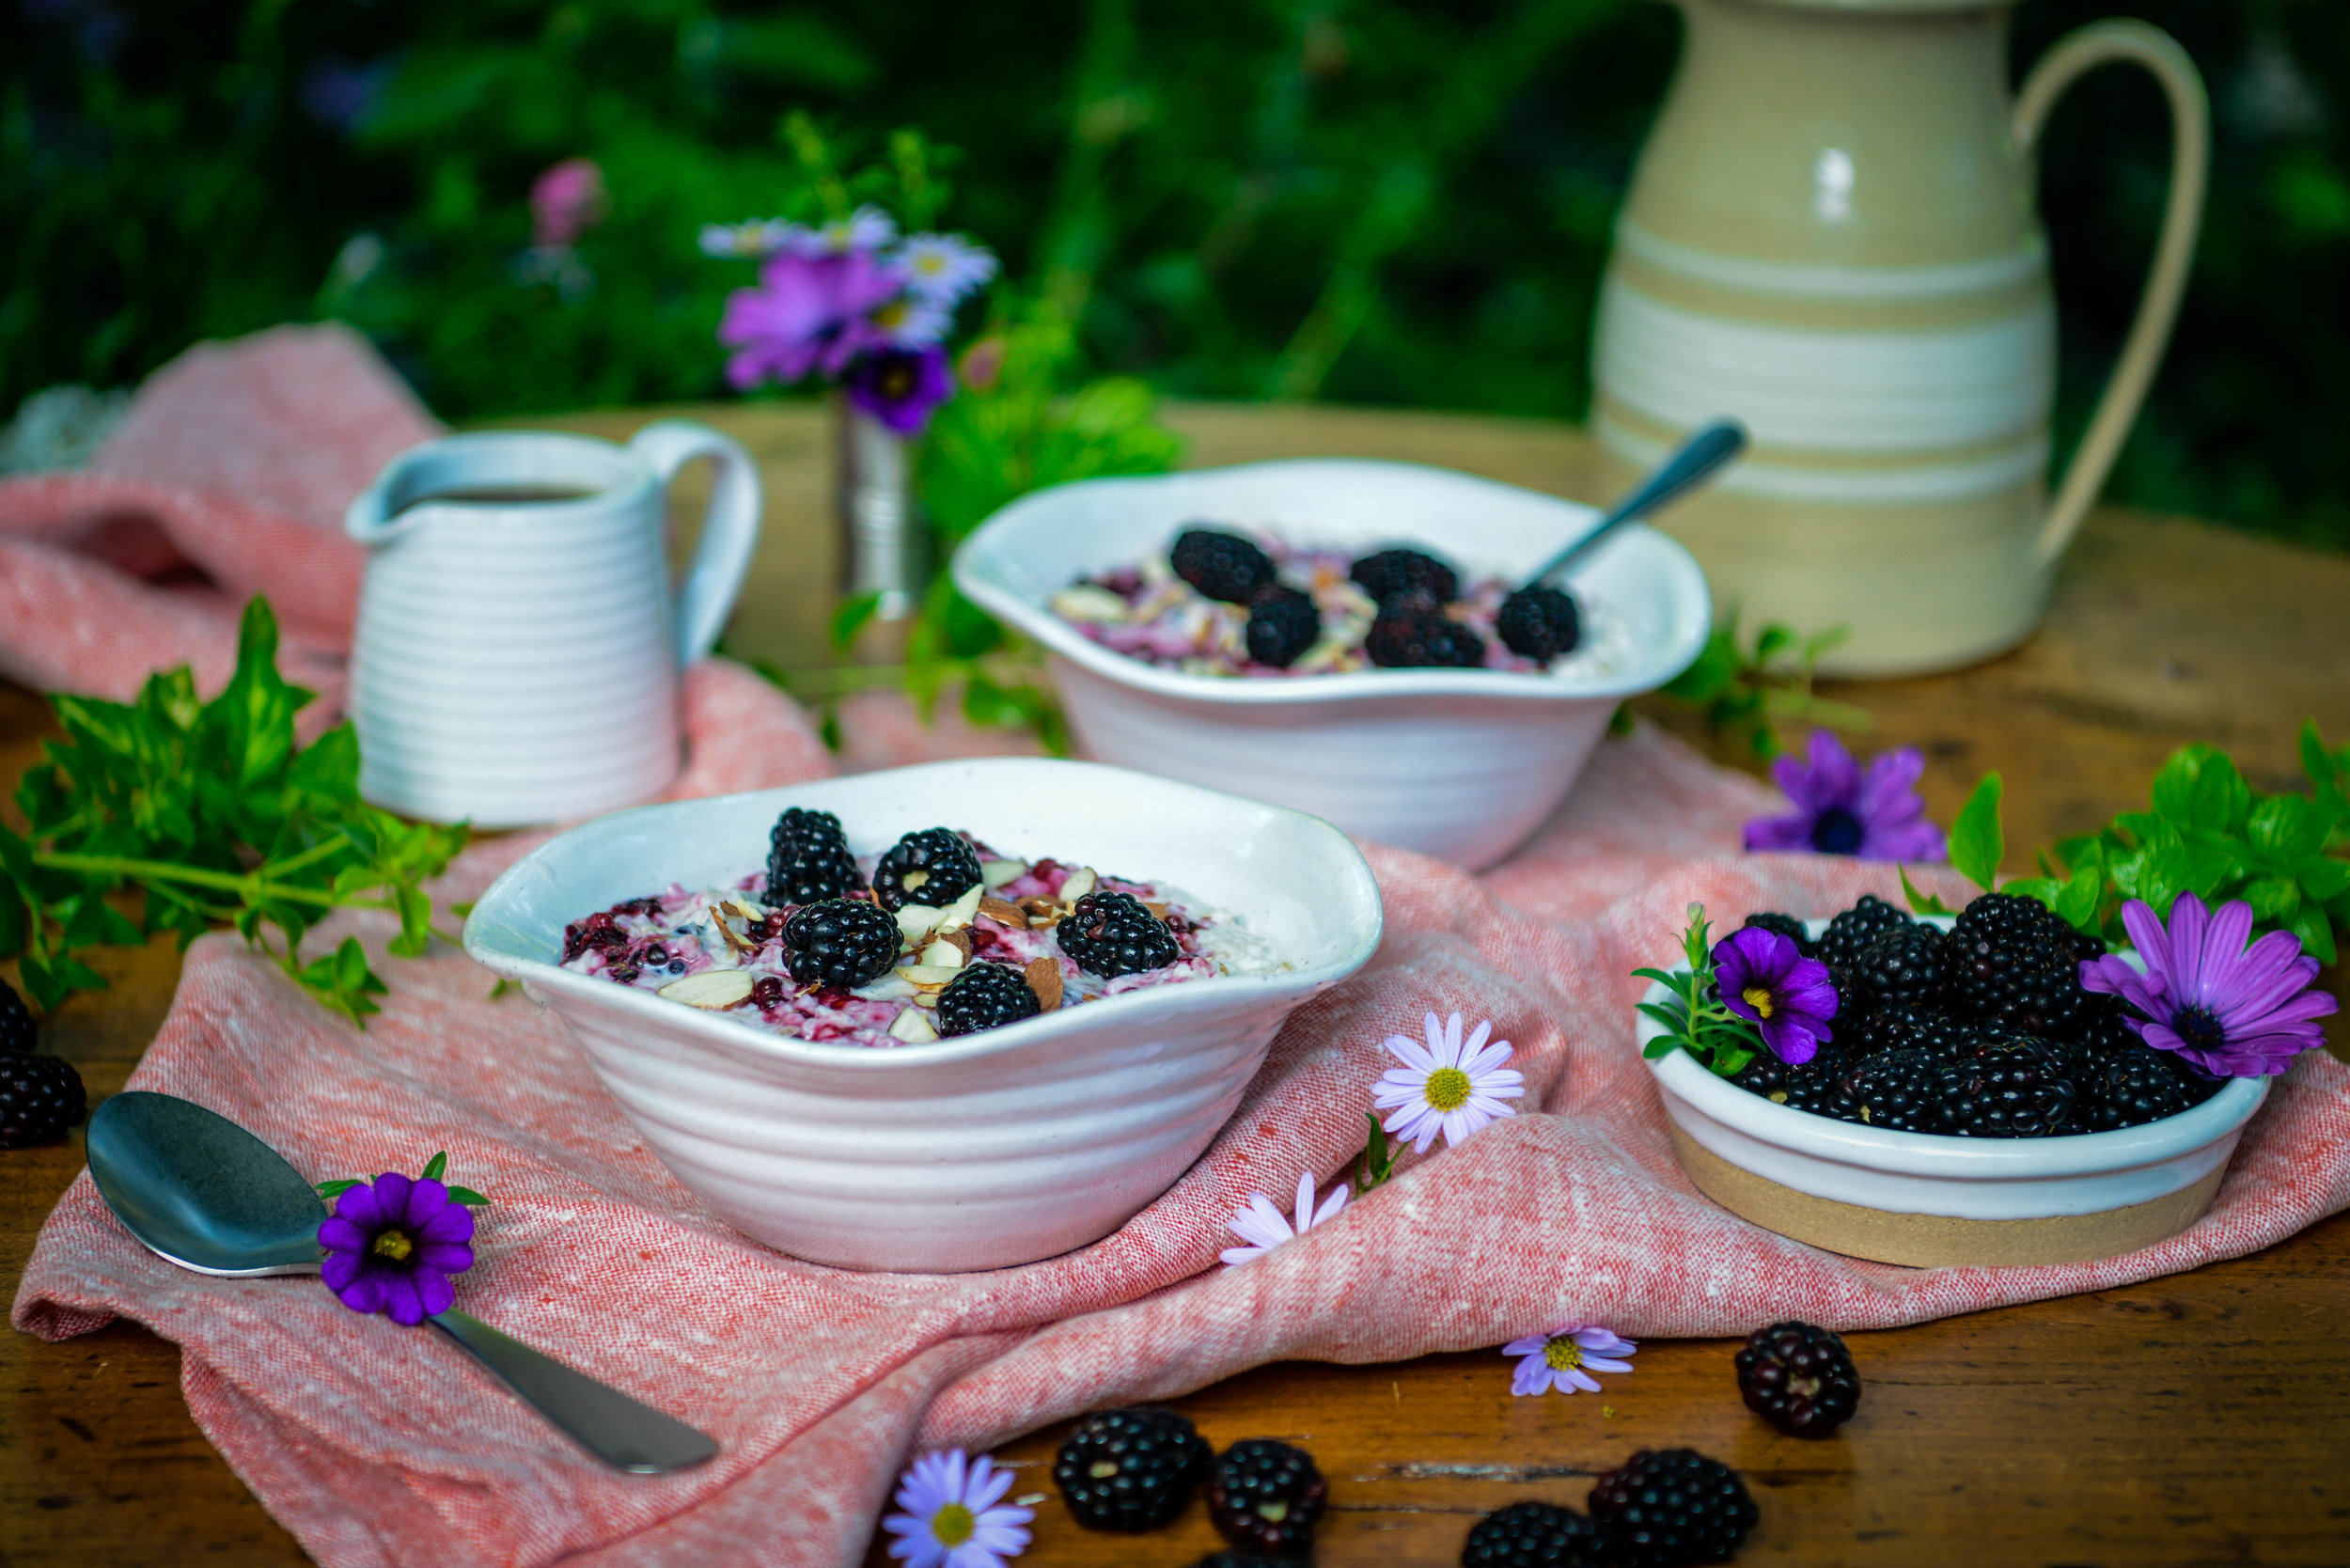 - With a deep purple color often associated with luxury, nobility, power, and magic, the blackberry is rich in antioxidants, medicinal properties, and a glorious bursting wild juiciness. Unlike other summer berries, the blackberry retains its firm texture when cooked. Biting into a spoonful of this creamy risotto is an unexpected hedonistic breakfast experience. Indulgent for sure, healthy, and visually gorgeous, this preparation is perfect for breakfast in bed for someone special or for a lazy Sunday morning in the garden reading The New York Times.